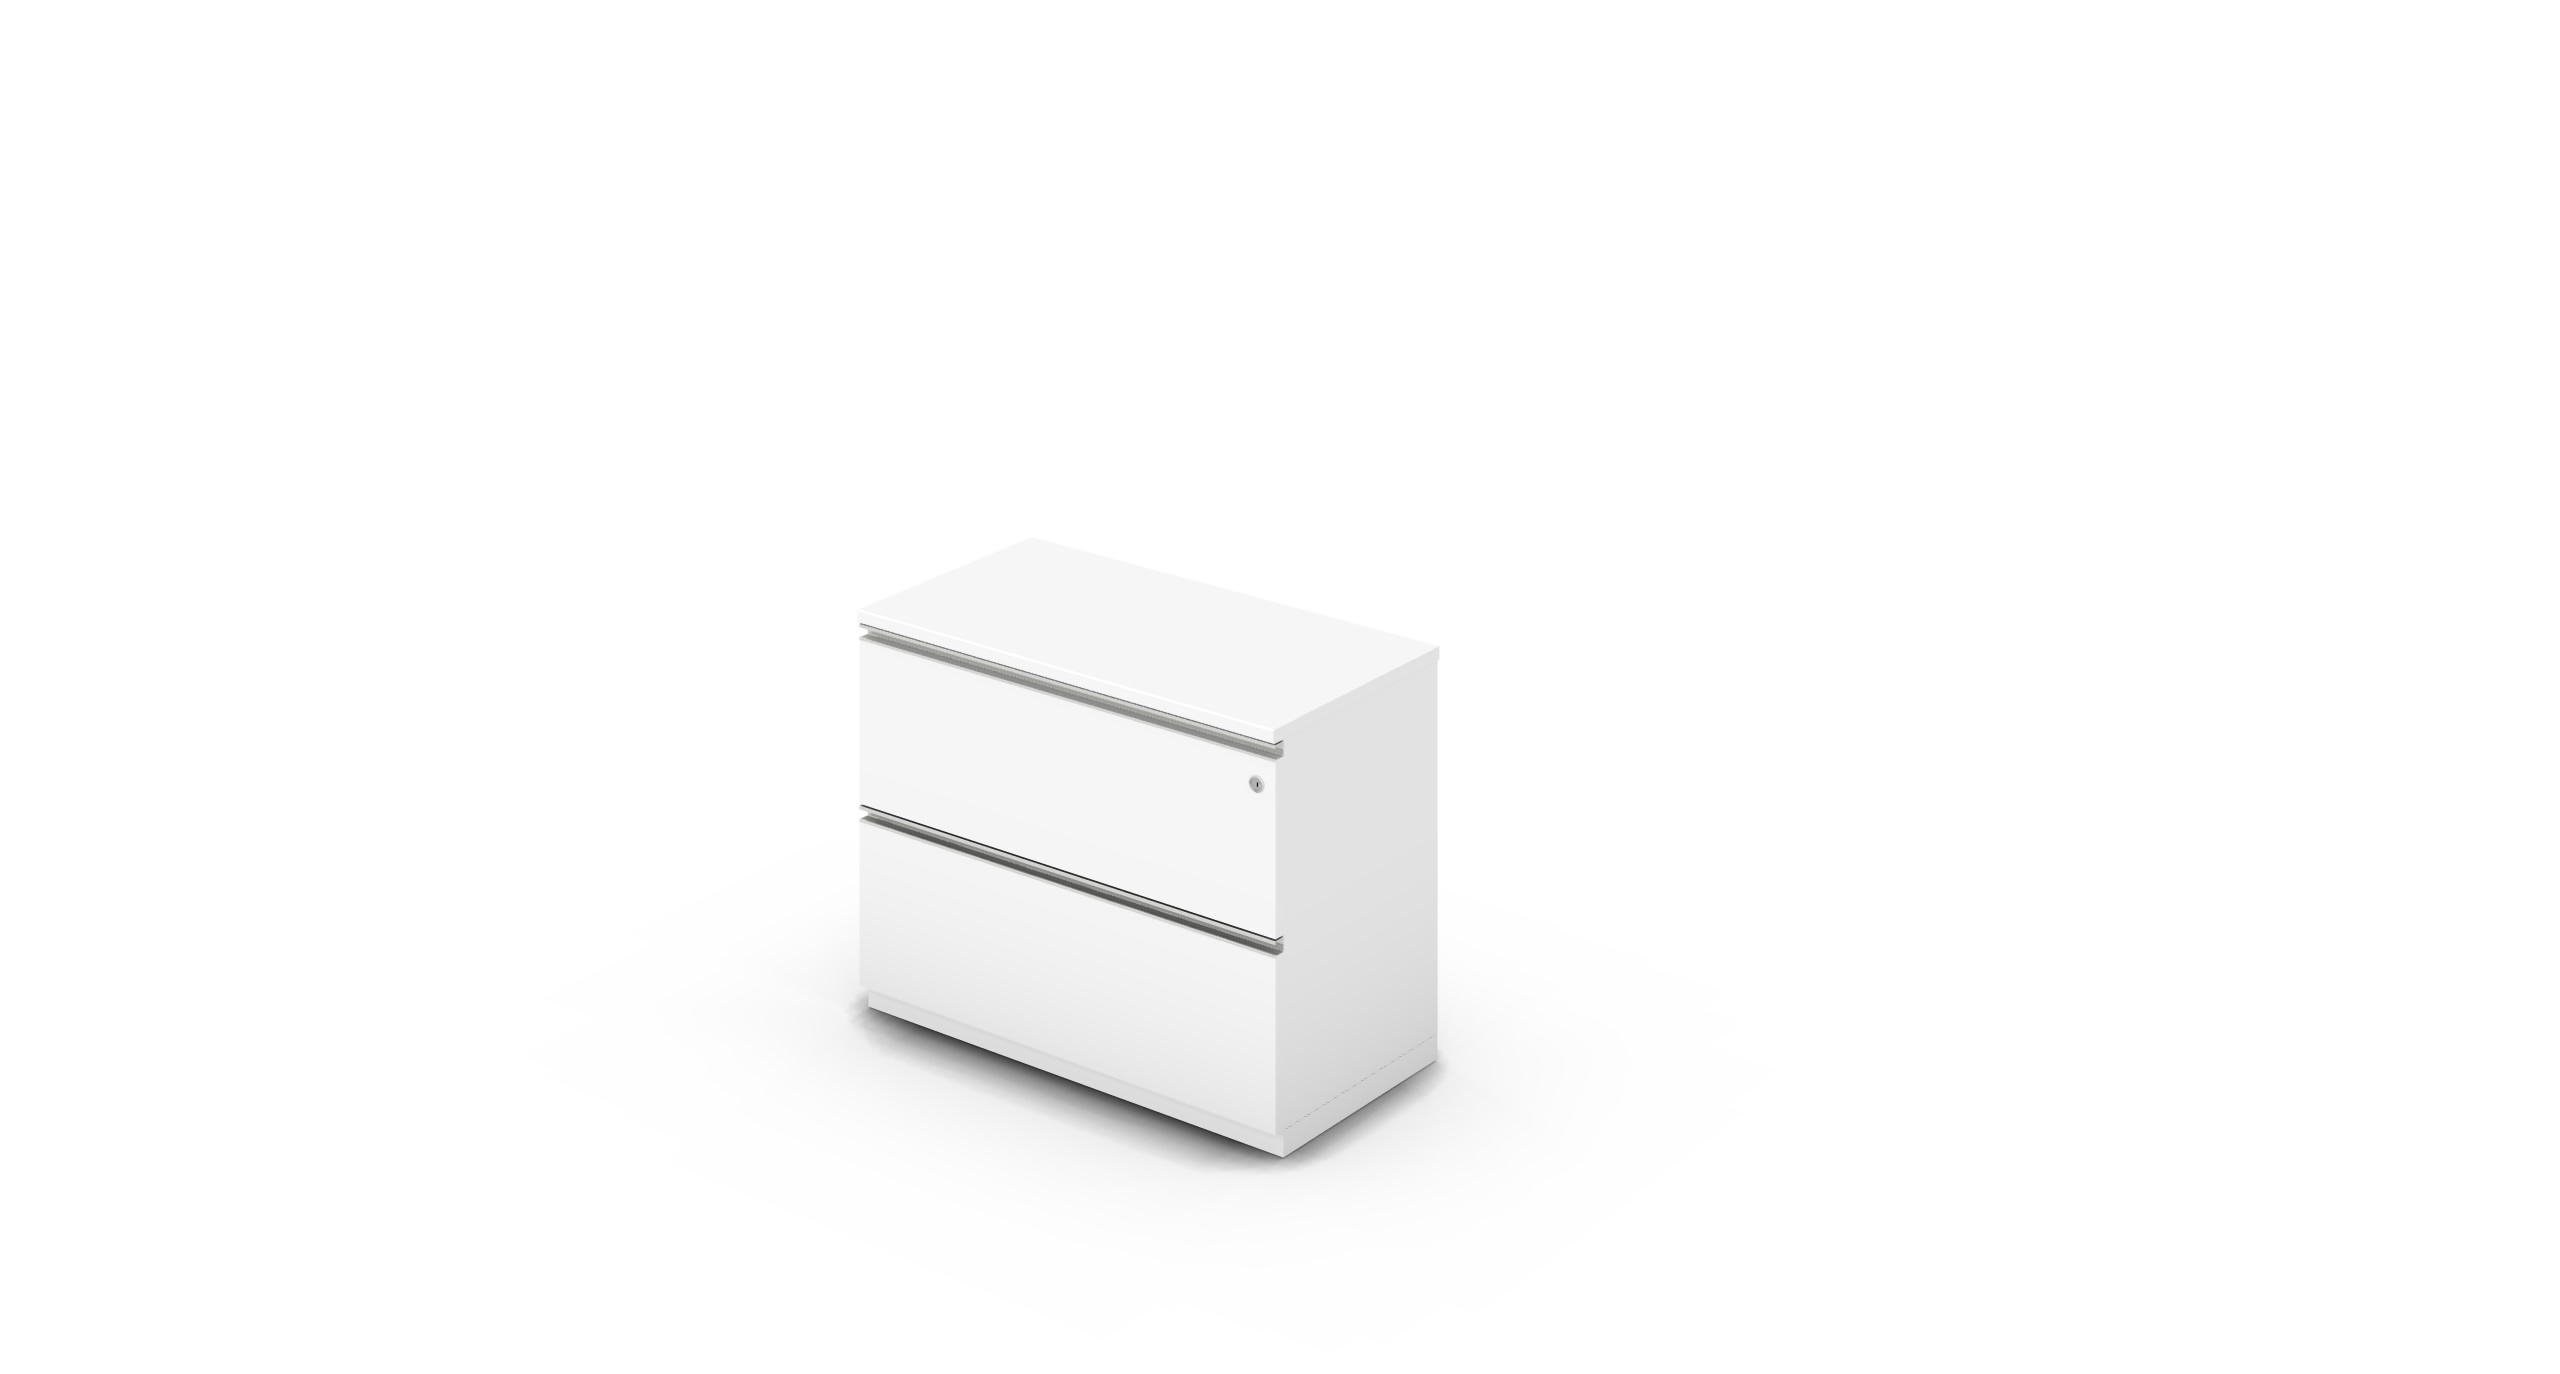 Cabinet_900x450x775_DR_White_Rail_WithCylinder